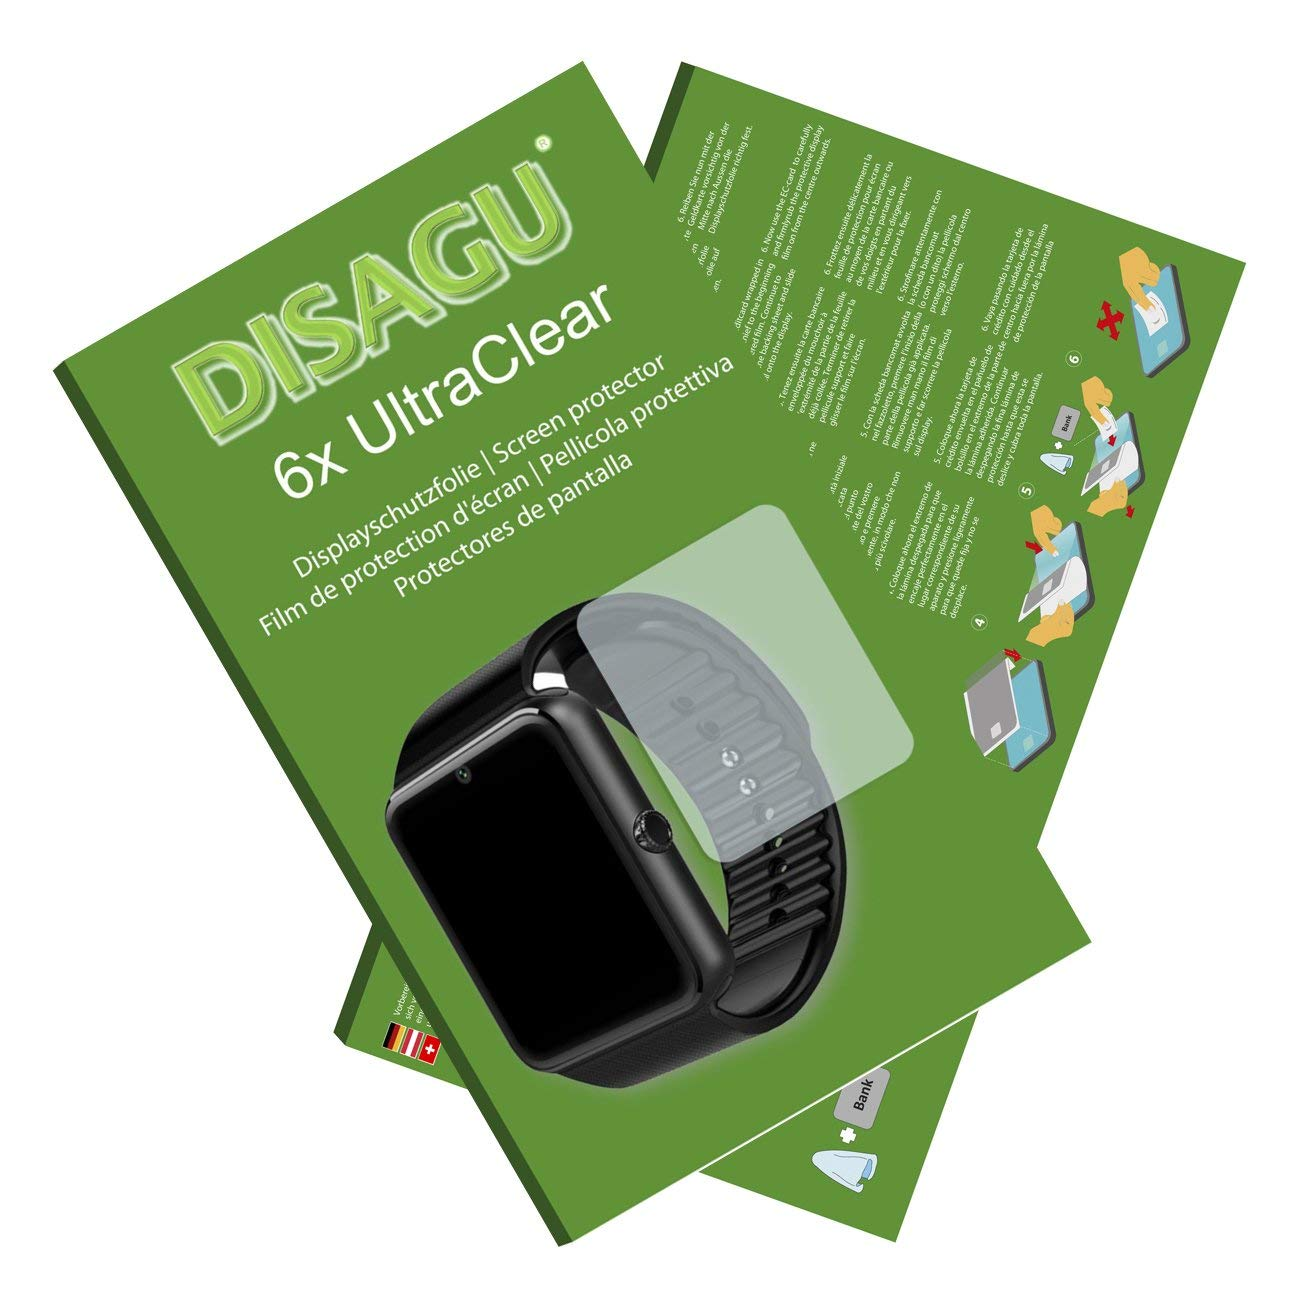 "DISAGU 6x Ultra Clear Screen Protector for LaTEC 1.54"" Bluetooth Smart Watch (intentionally smaller than the display due to its curved surface)"